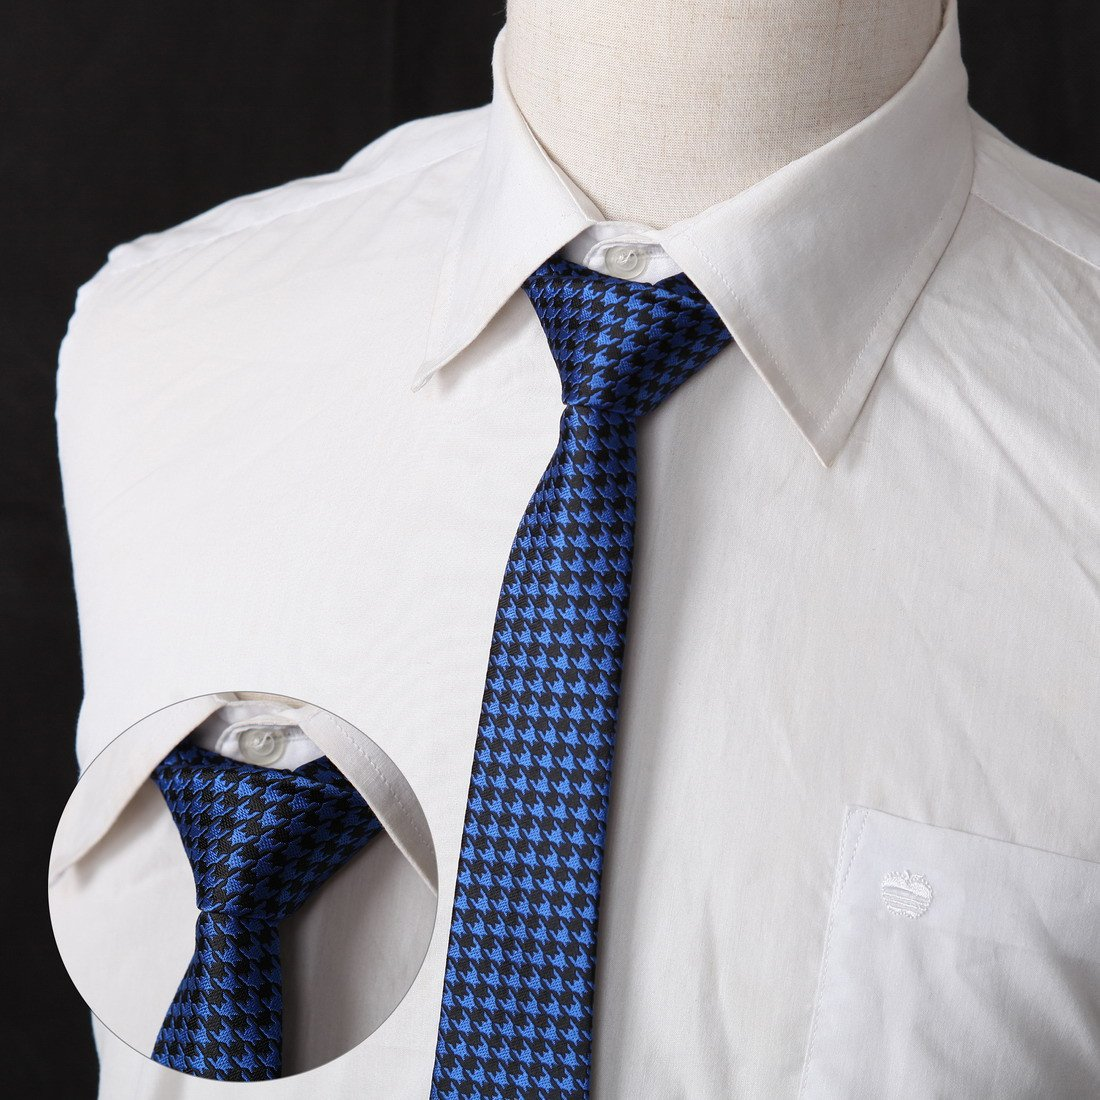 DANF0039 Series Colors 5cm-width Polyester Slim Ties Creative Fashion Skinny Ties - 5 Styles Available Inspire For Business By Dan Smith by Dan Smith (Image #4)